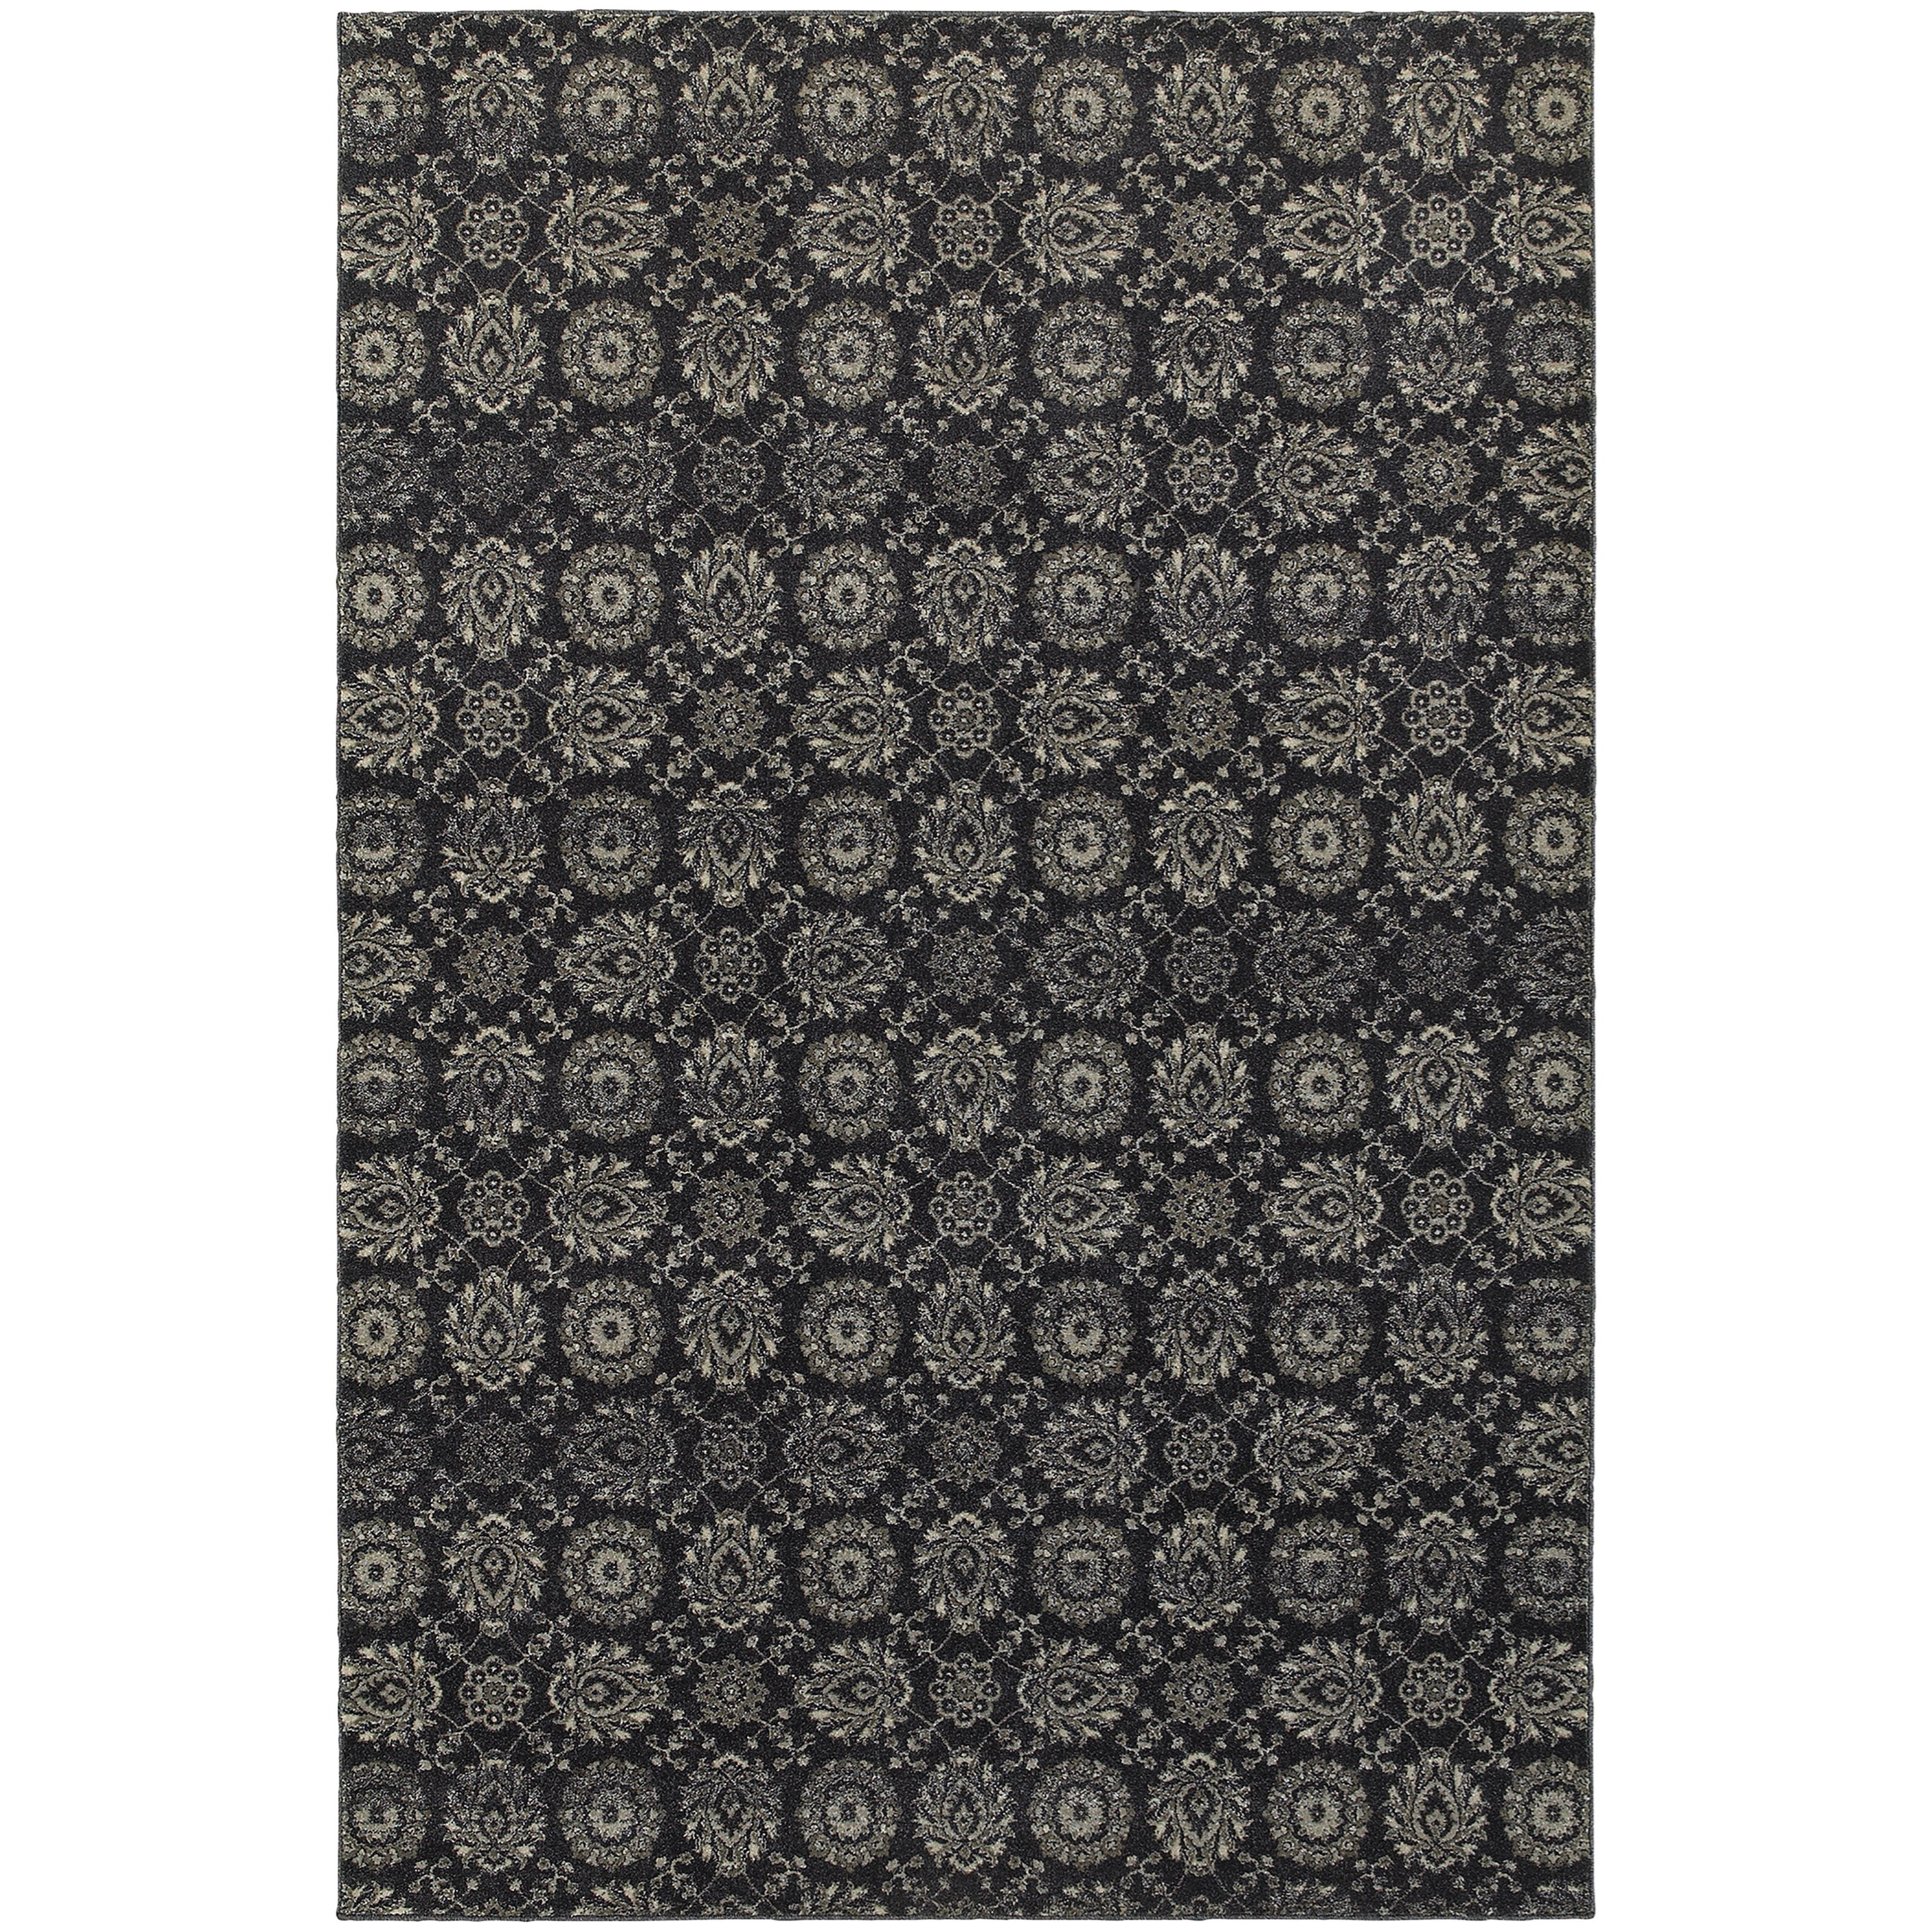 "Richmond 3'10"" X  5' 5"" Rectangle Area Rug by Oriental Weavers at Novello Home Furnishings"